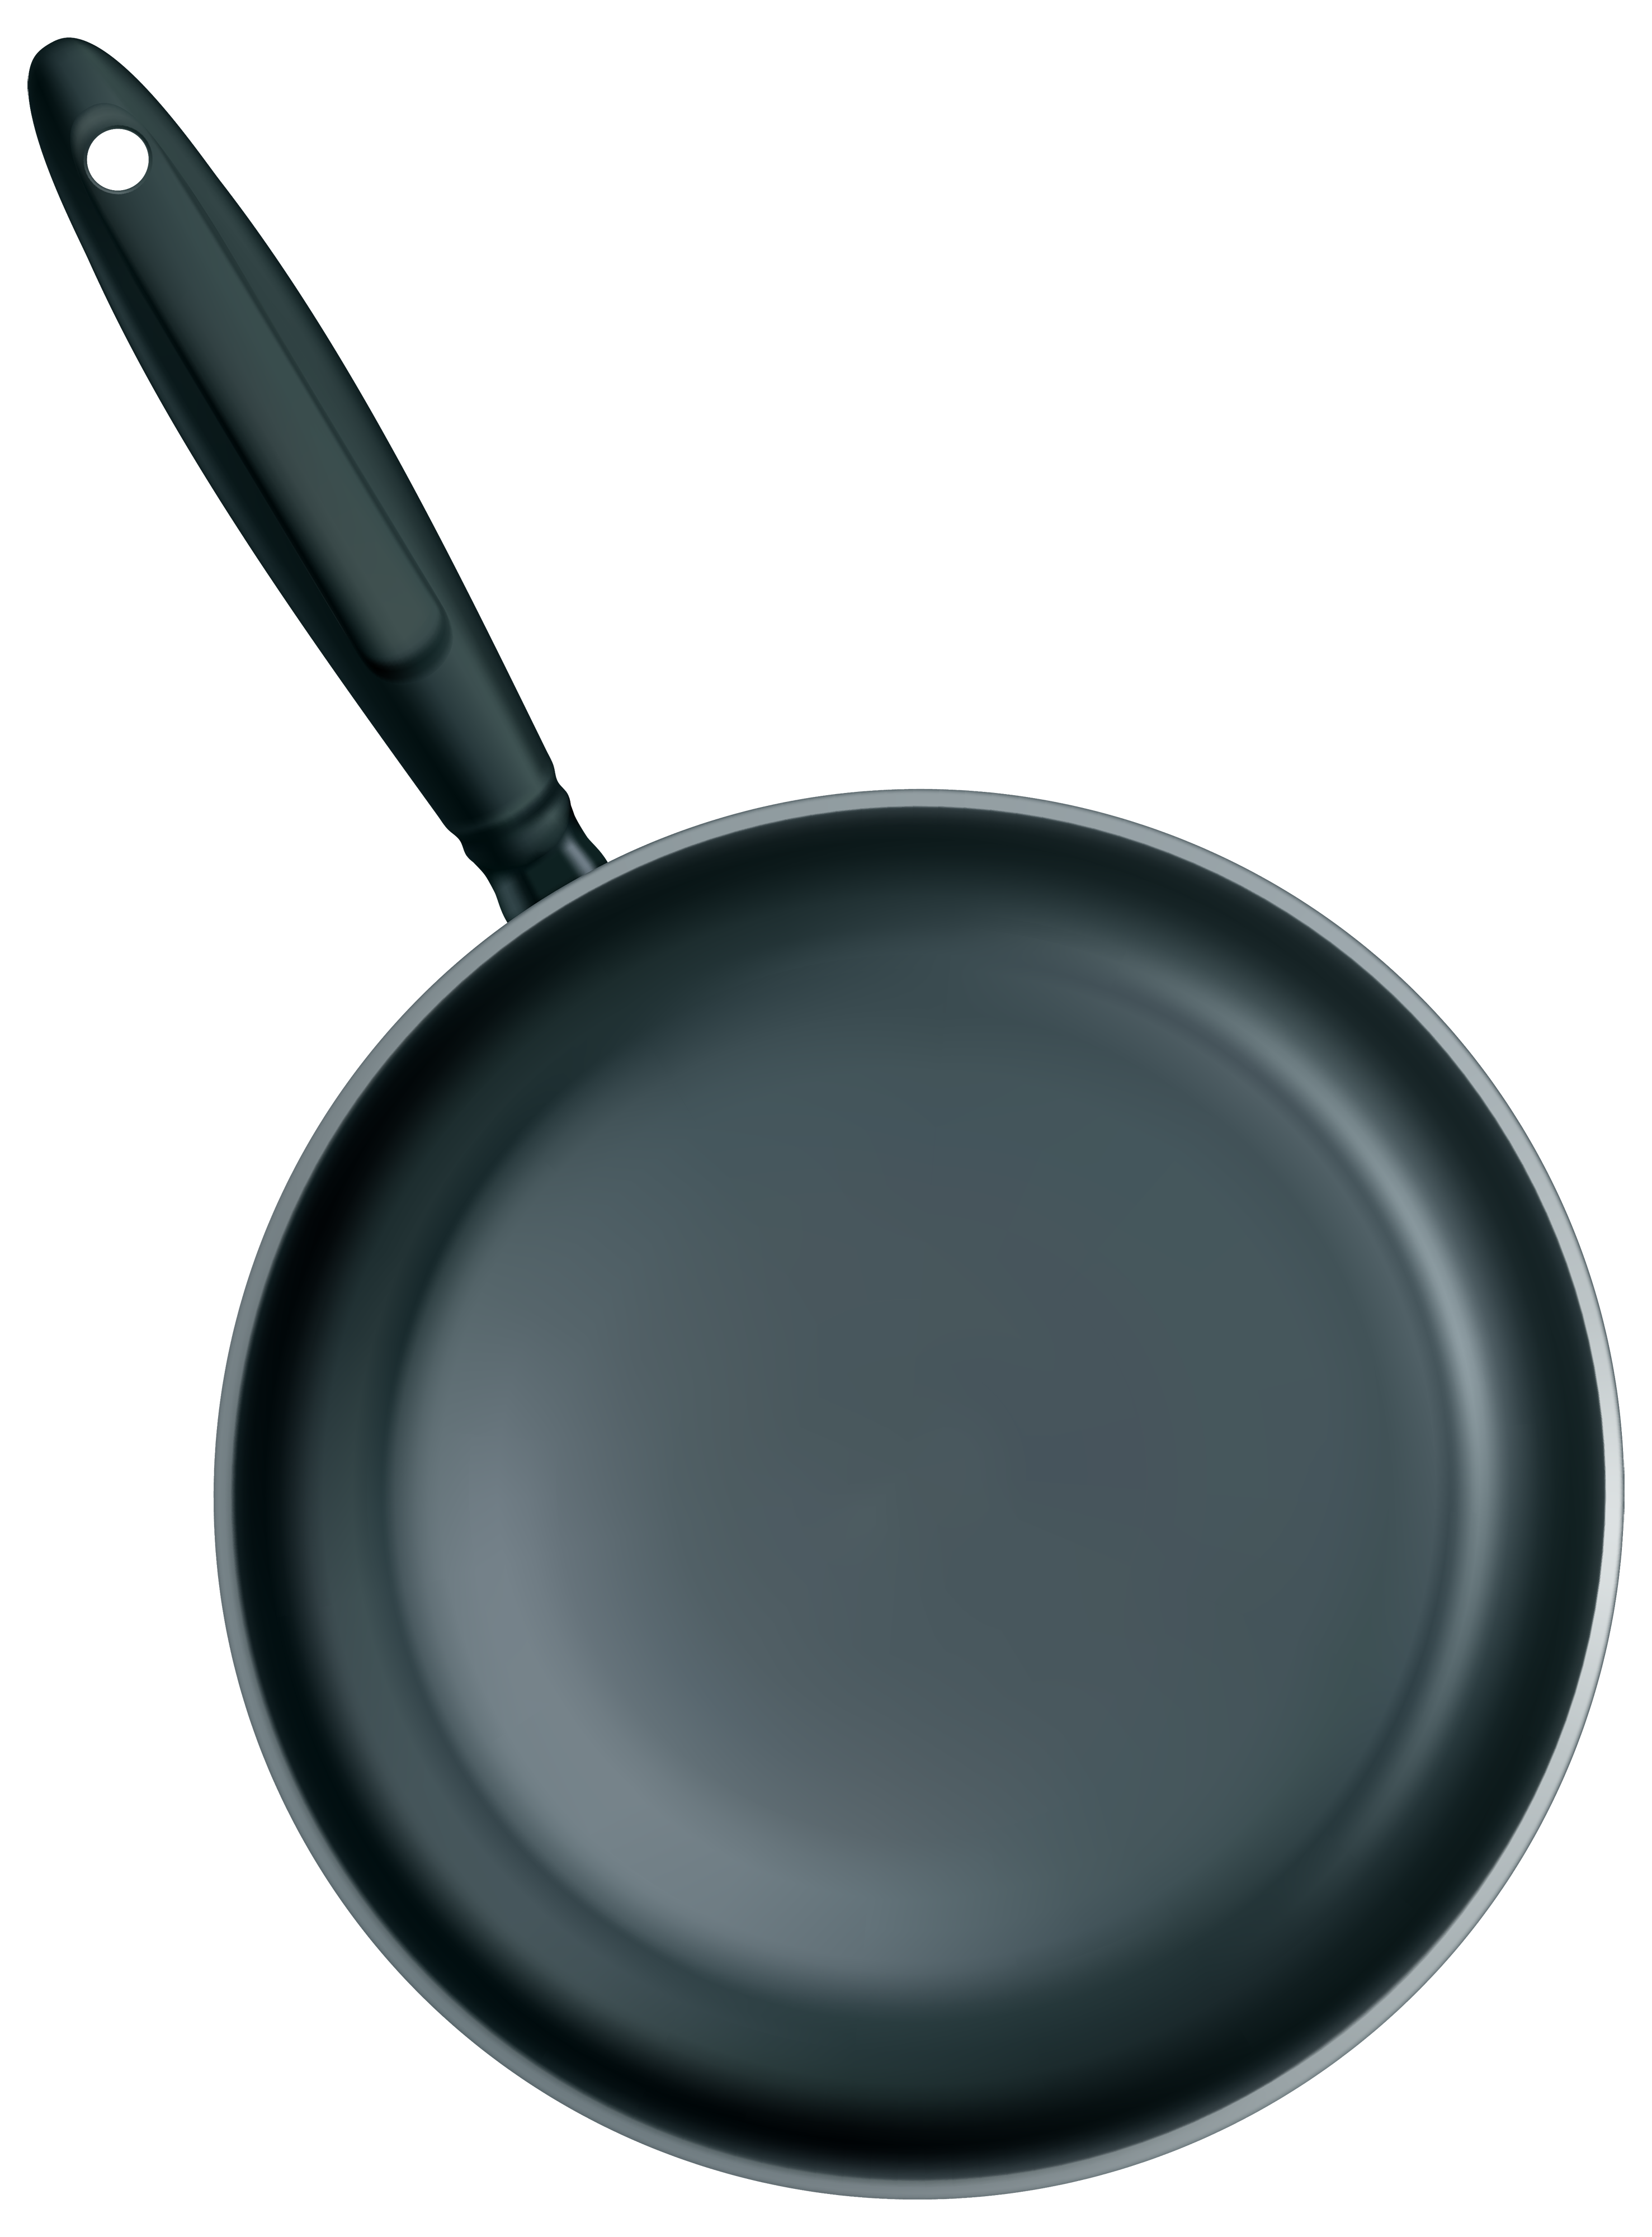 Frying Pan Png image #43322